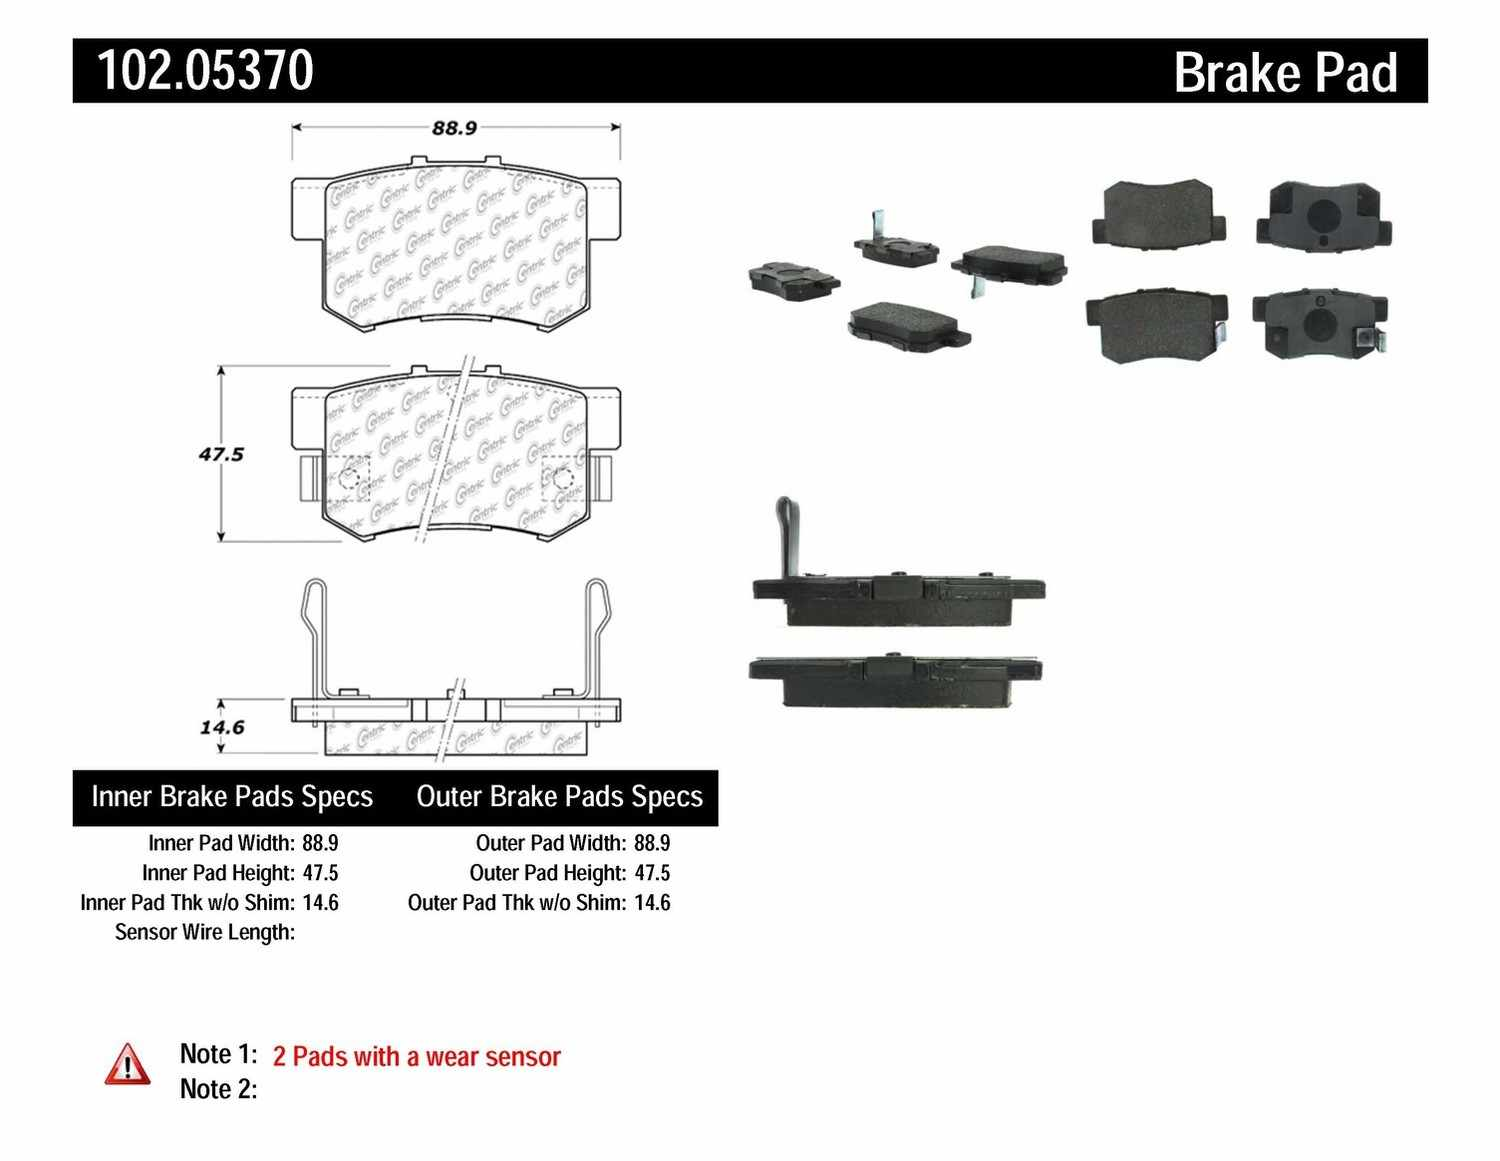 C-TEK BY CENTRIC - C-TEK Metallic Brake Pads (Rear) - CTK 102.05370